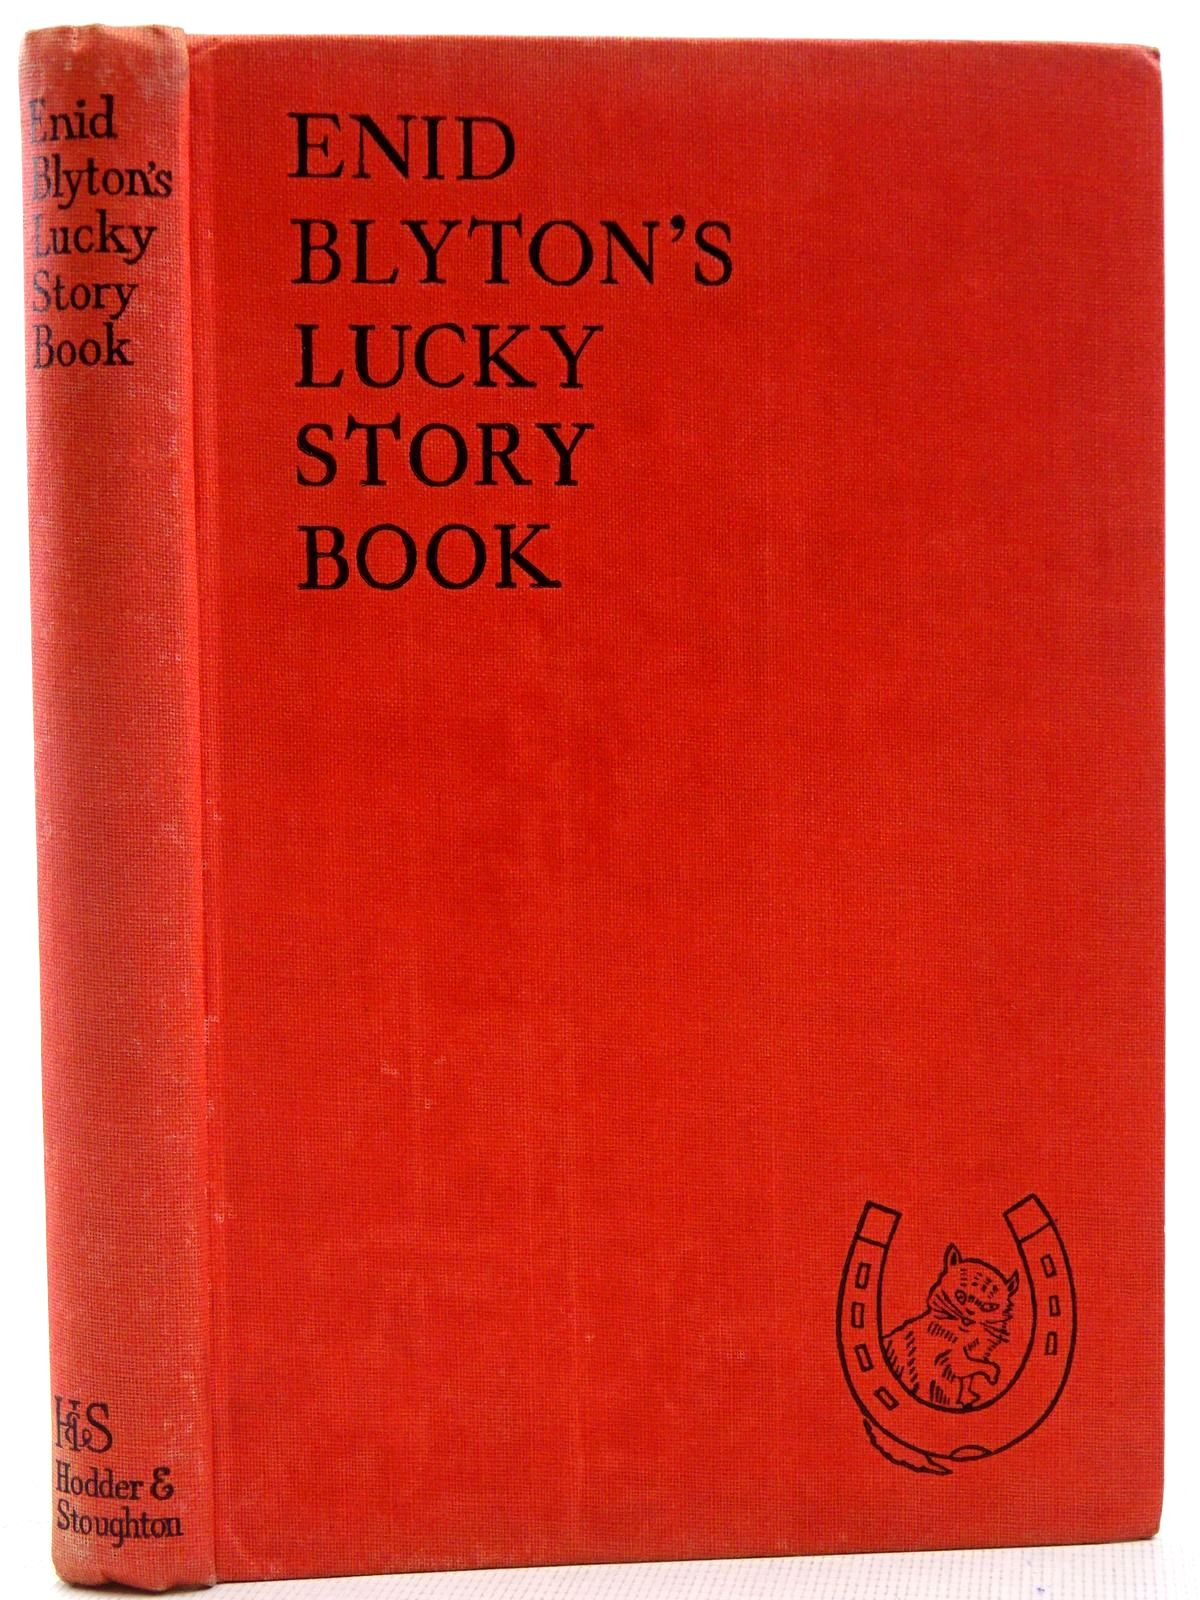 Photo of ENID BLYTON'S LUCKY STORY BOOK written by Blyton, Enid illustrated by Soper, Eileen published by Hodder & Stoughton (STOCK CODE: 2128667)  for sale by Stella & Rose's Books